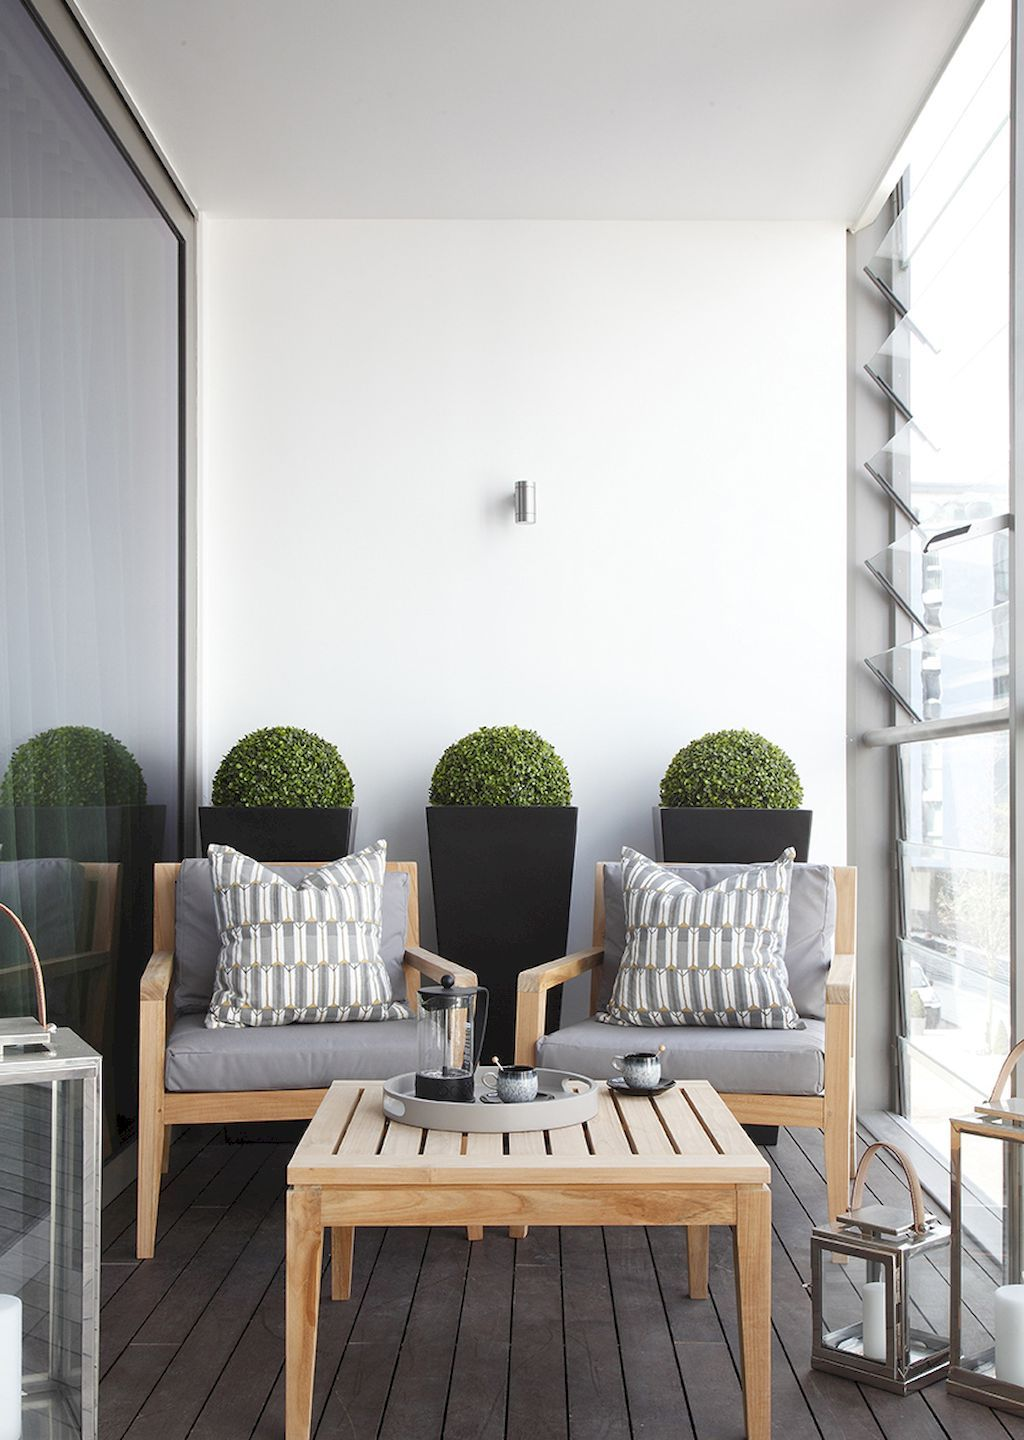 80 Small Apartment Balcony Decorating Ideas on A Budget | Apartment ...